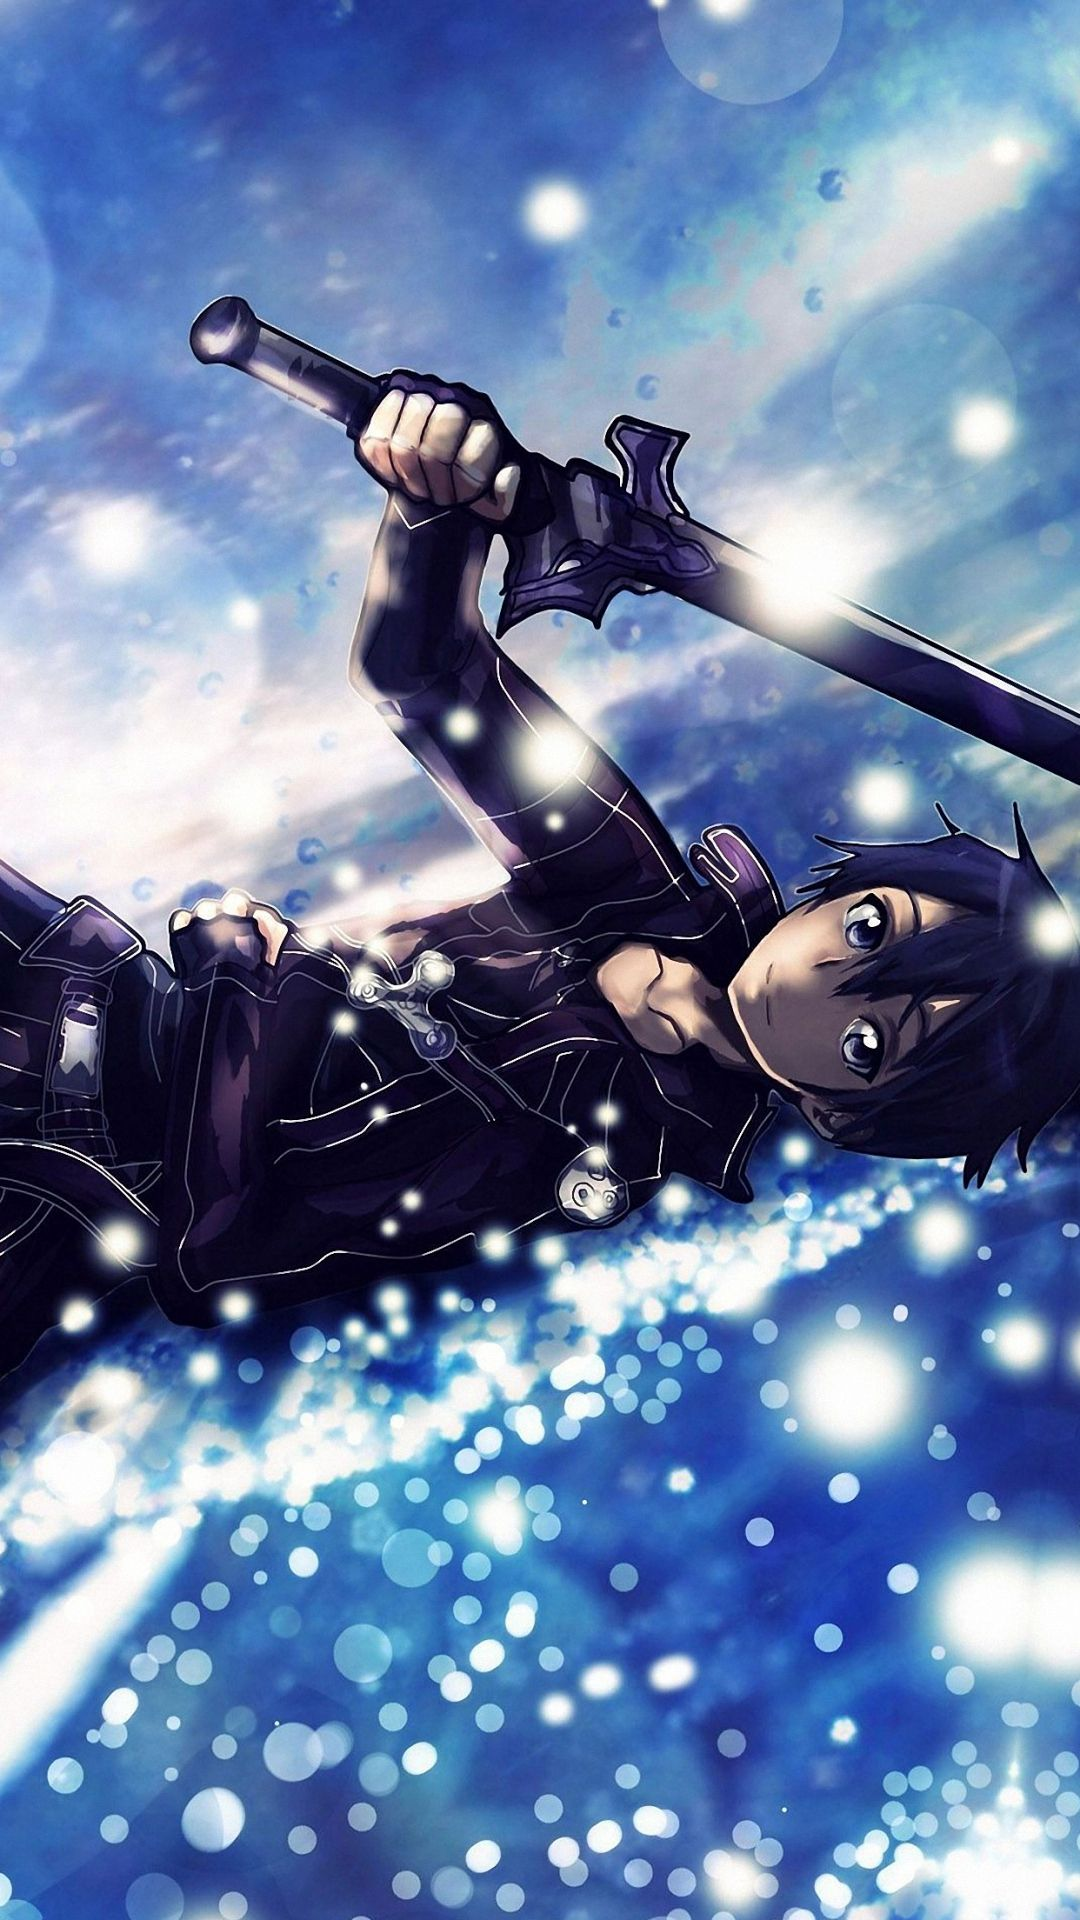 Kirito iPhone Wallpaper Sword art online wallpaper